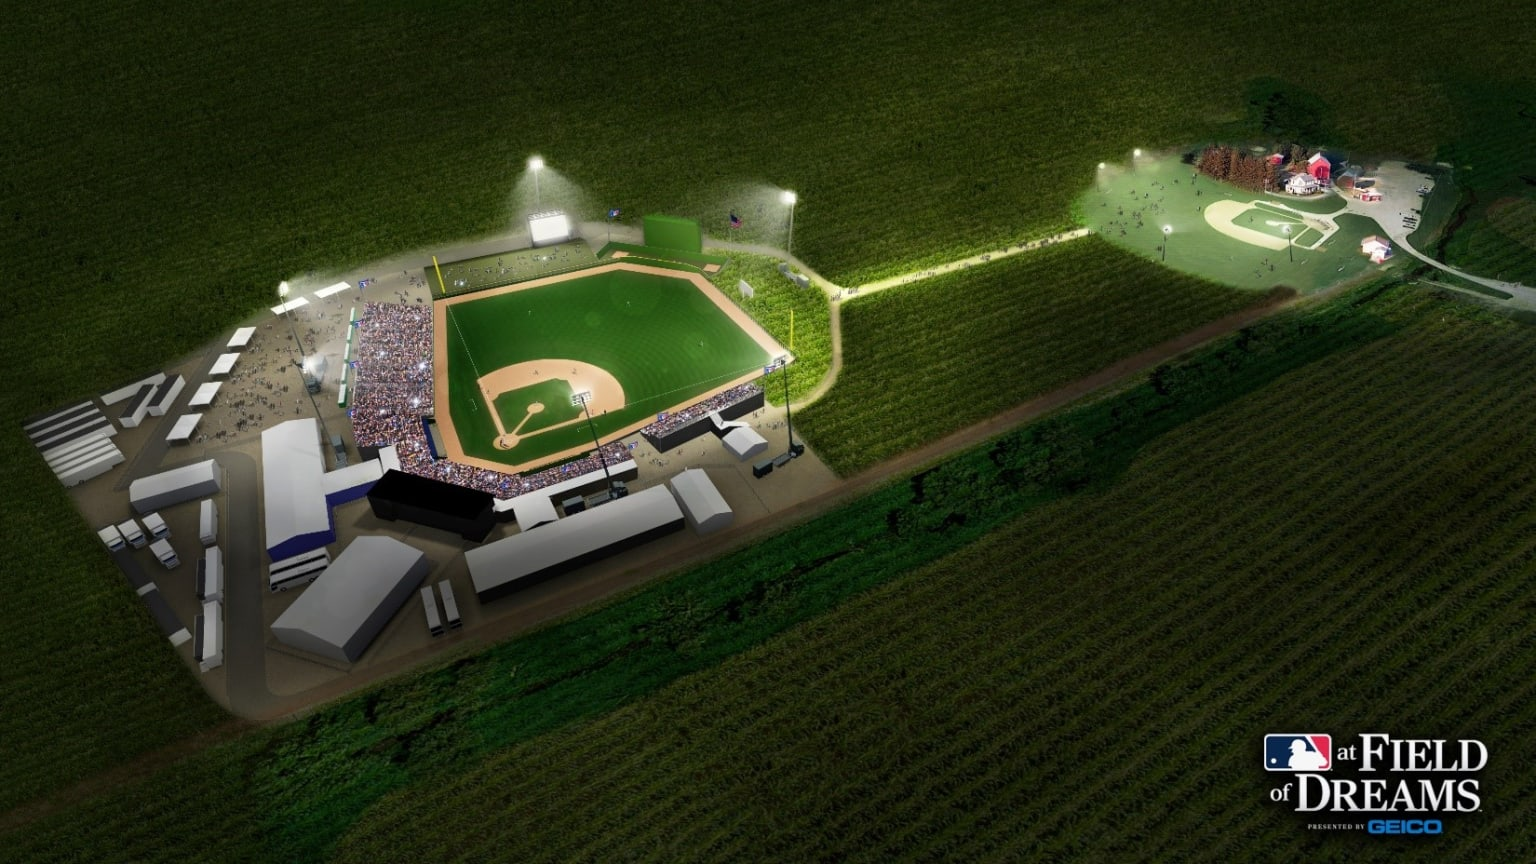 2021FieldofDreams